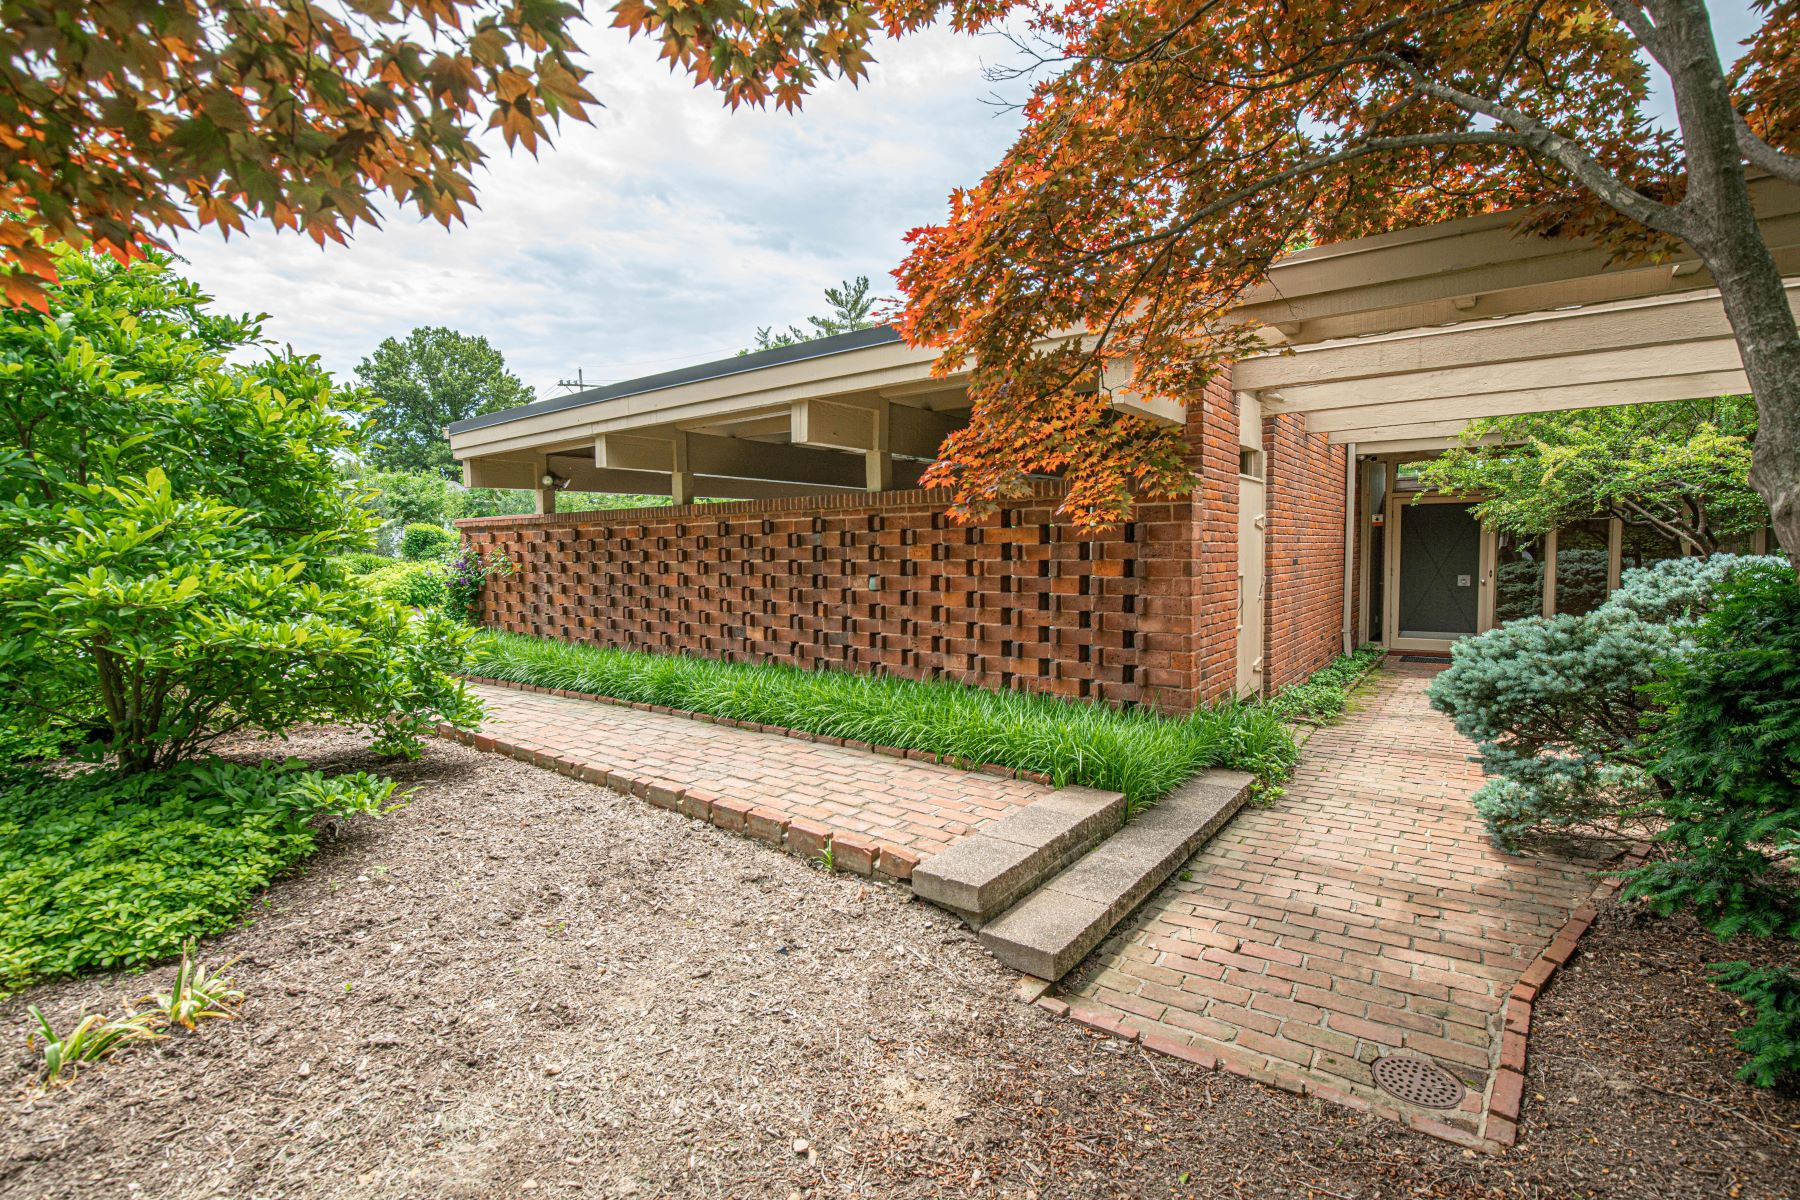 Single Family Homes for Rent at Important Mid-Century Home Designed by Isadore Shank 10 Westwood Country Club St. Louis, Missouri 63131 United States